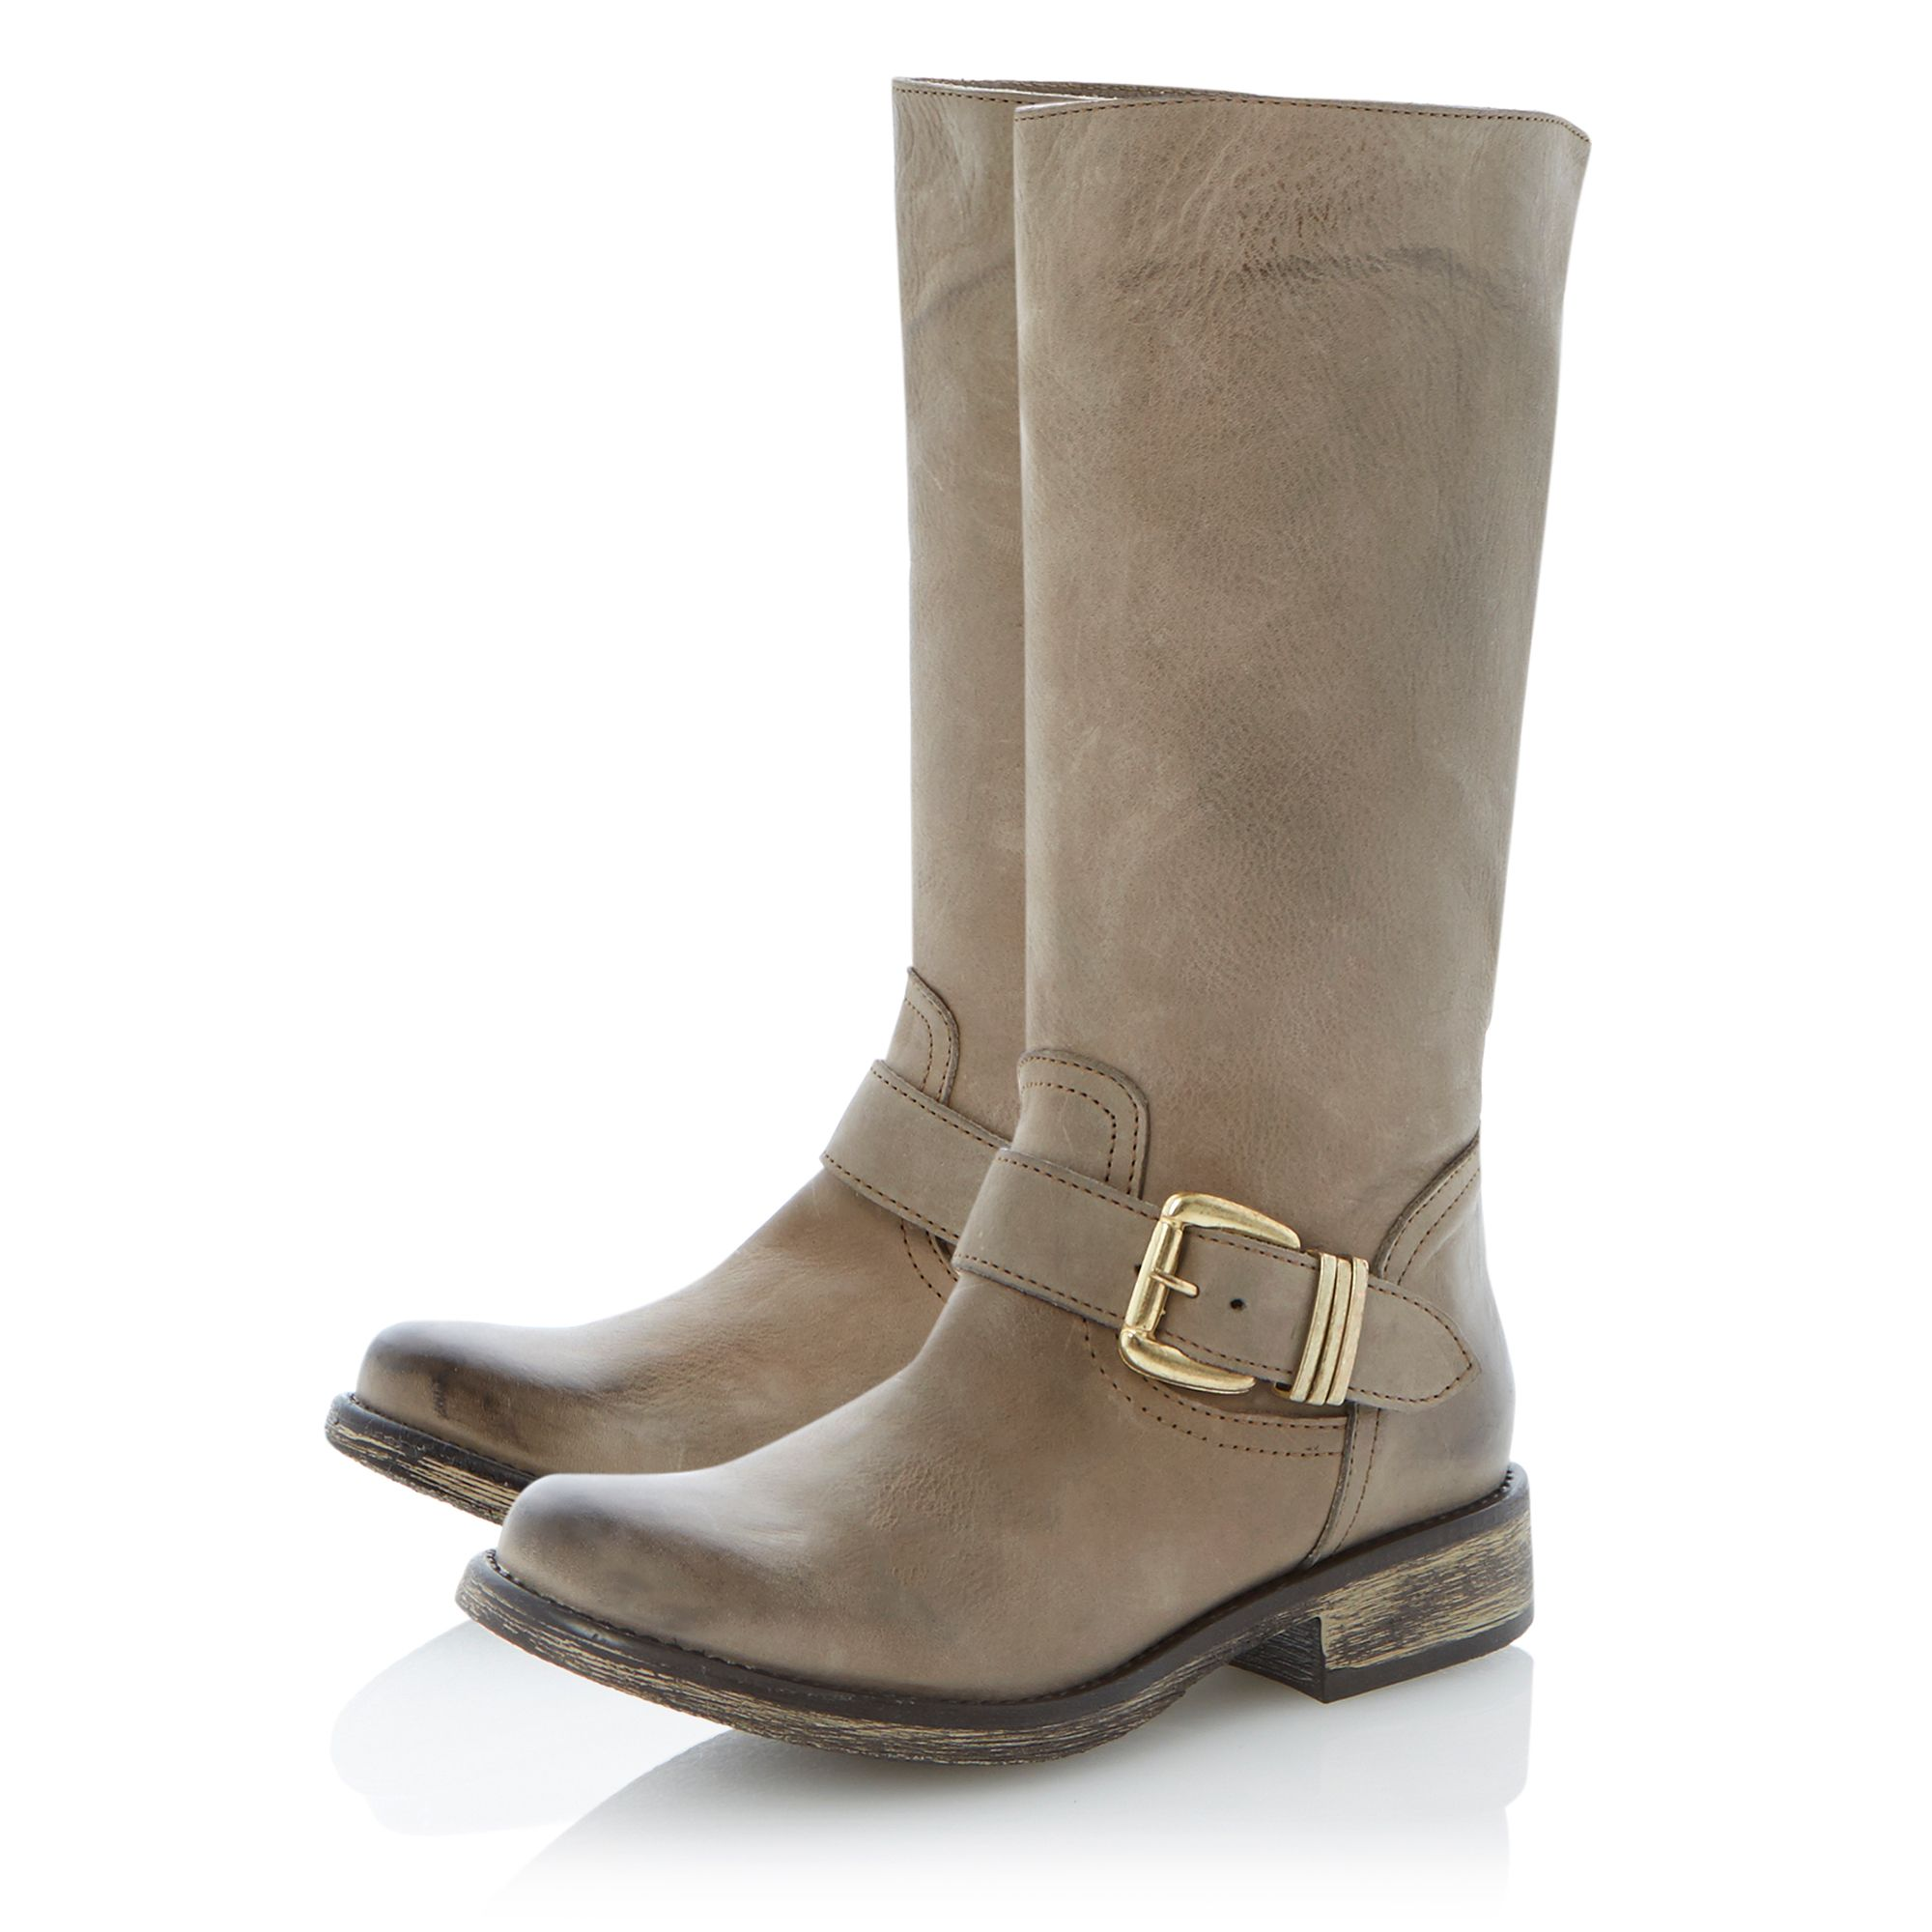 Fyzzle buckle trim leather calf boots